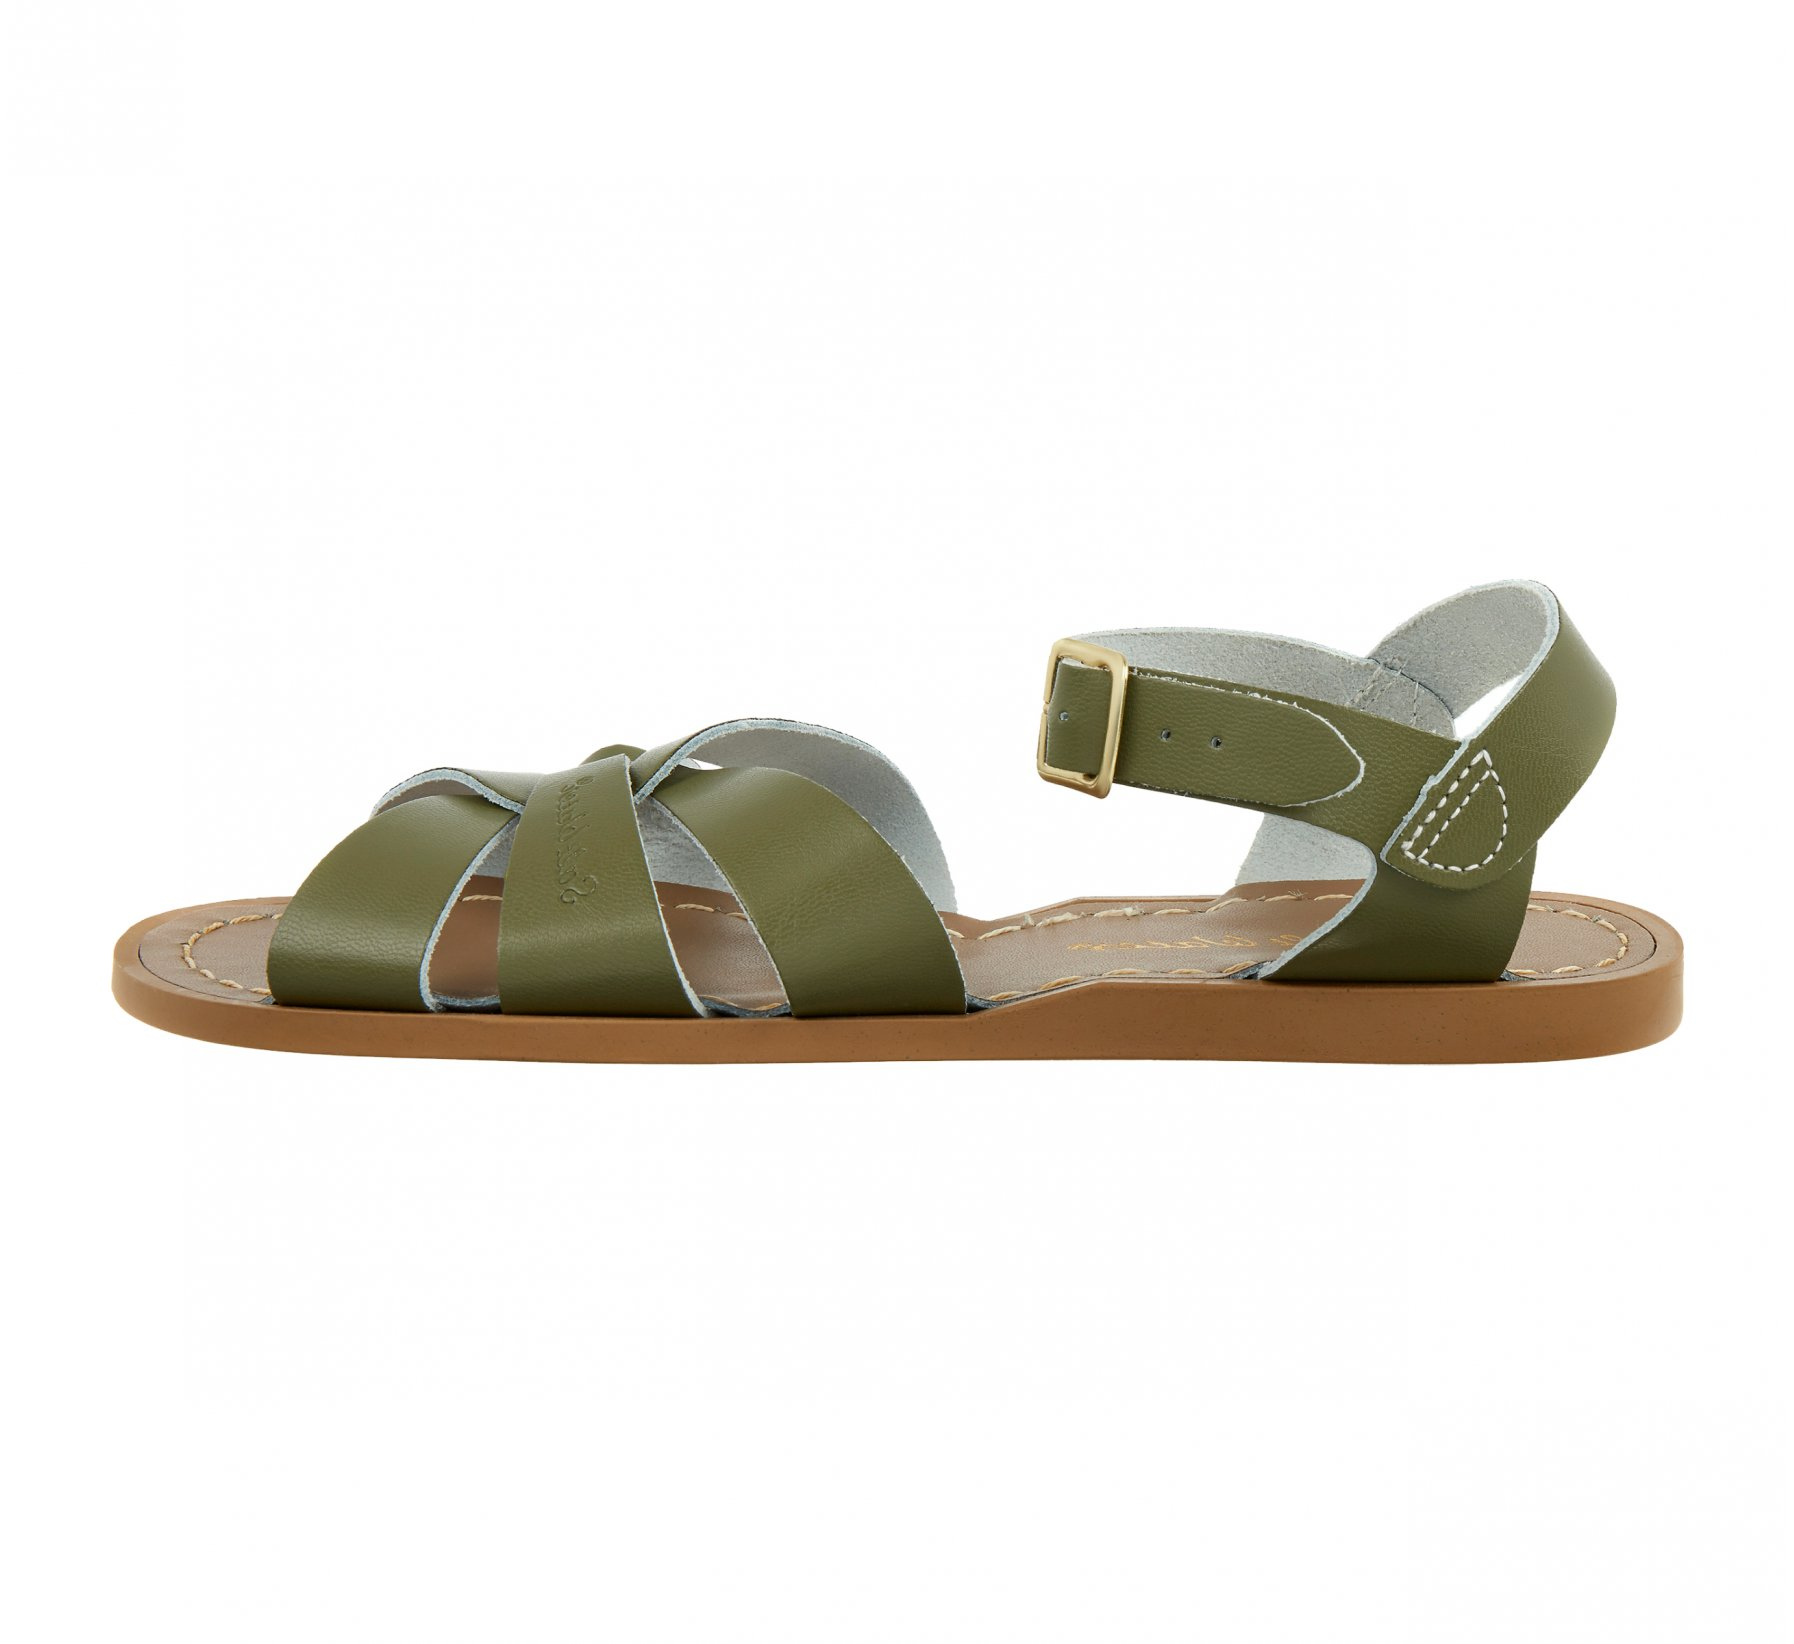 Original Olive - Salt Water Sandals